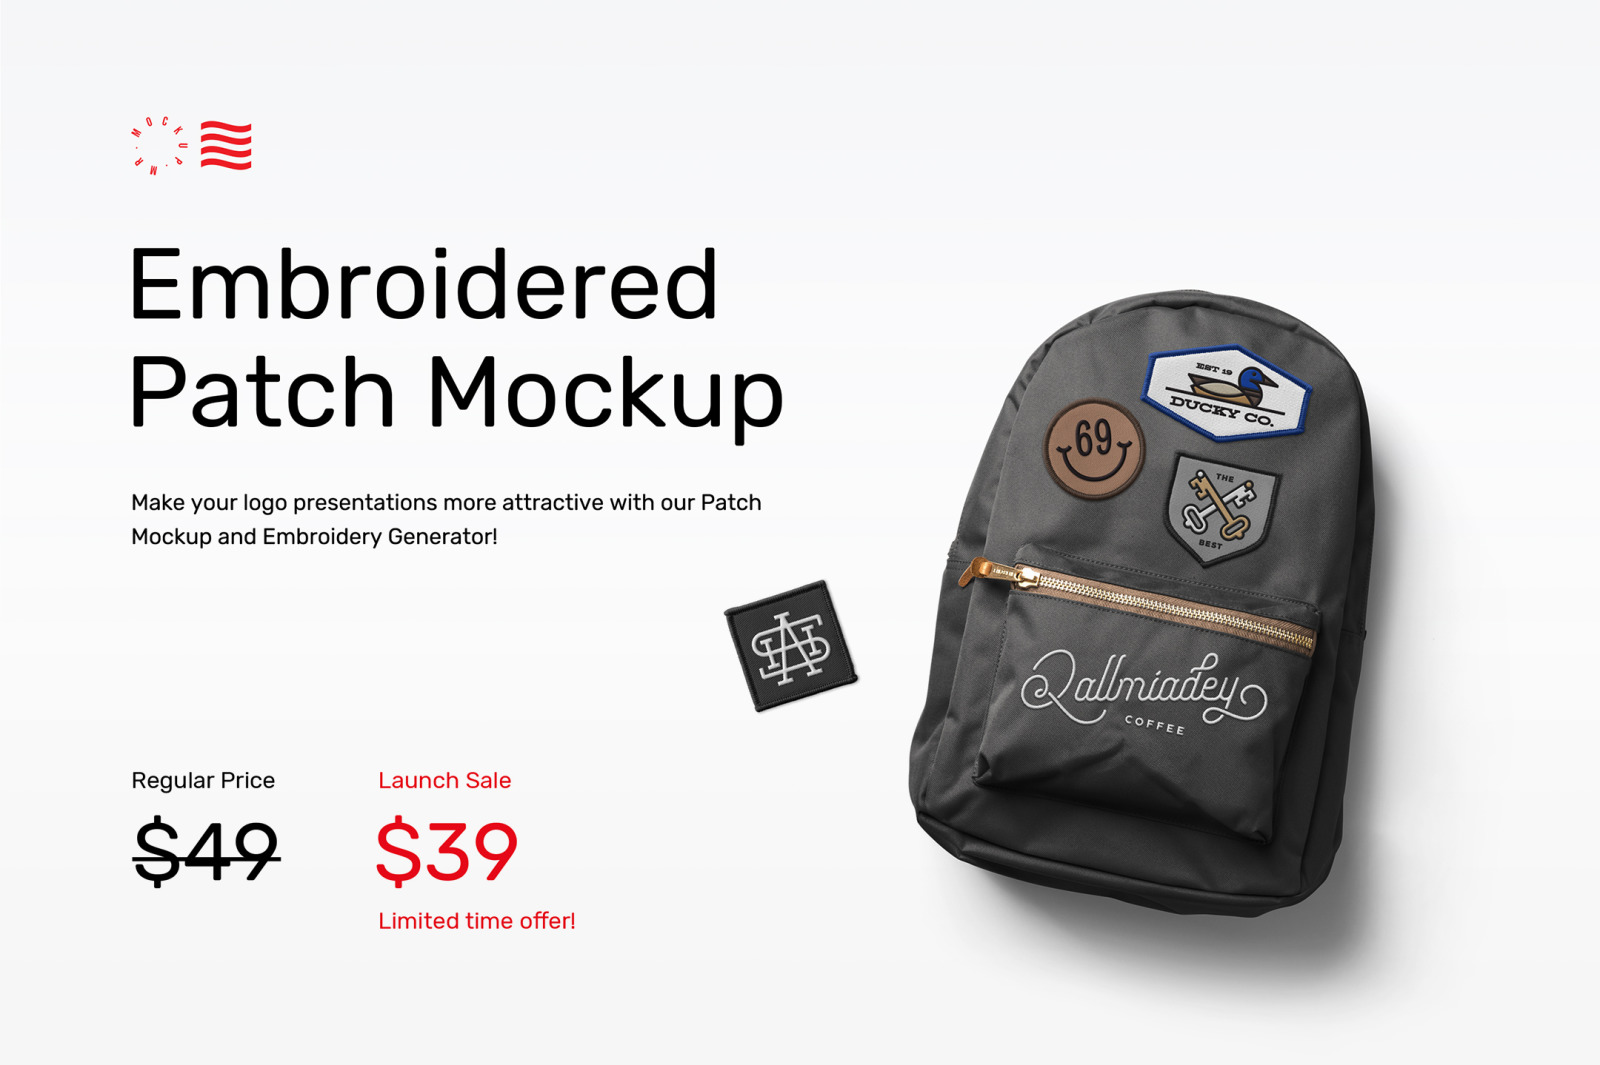 Patch Mockups And Embroidery Generator In Apparel Mockups On